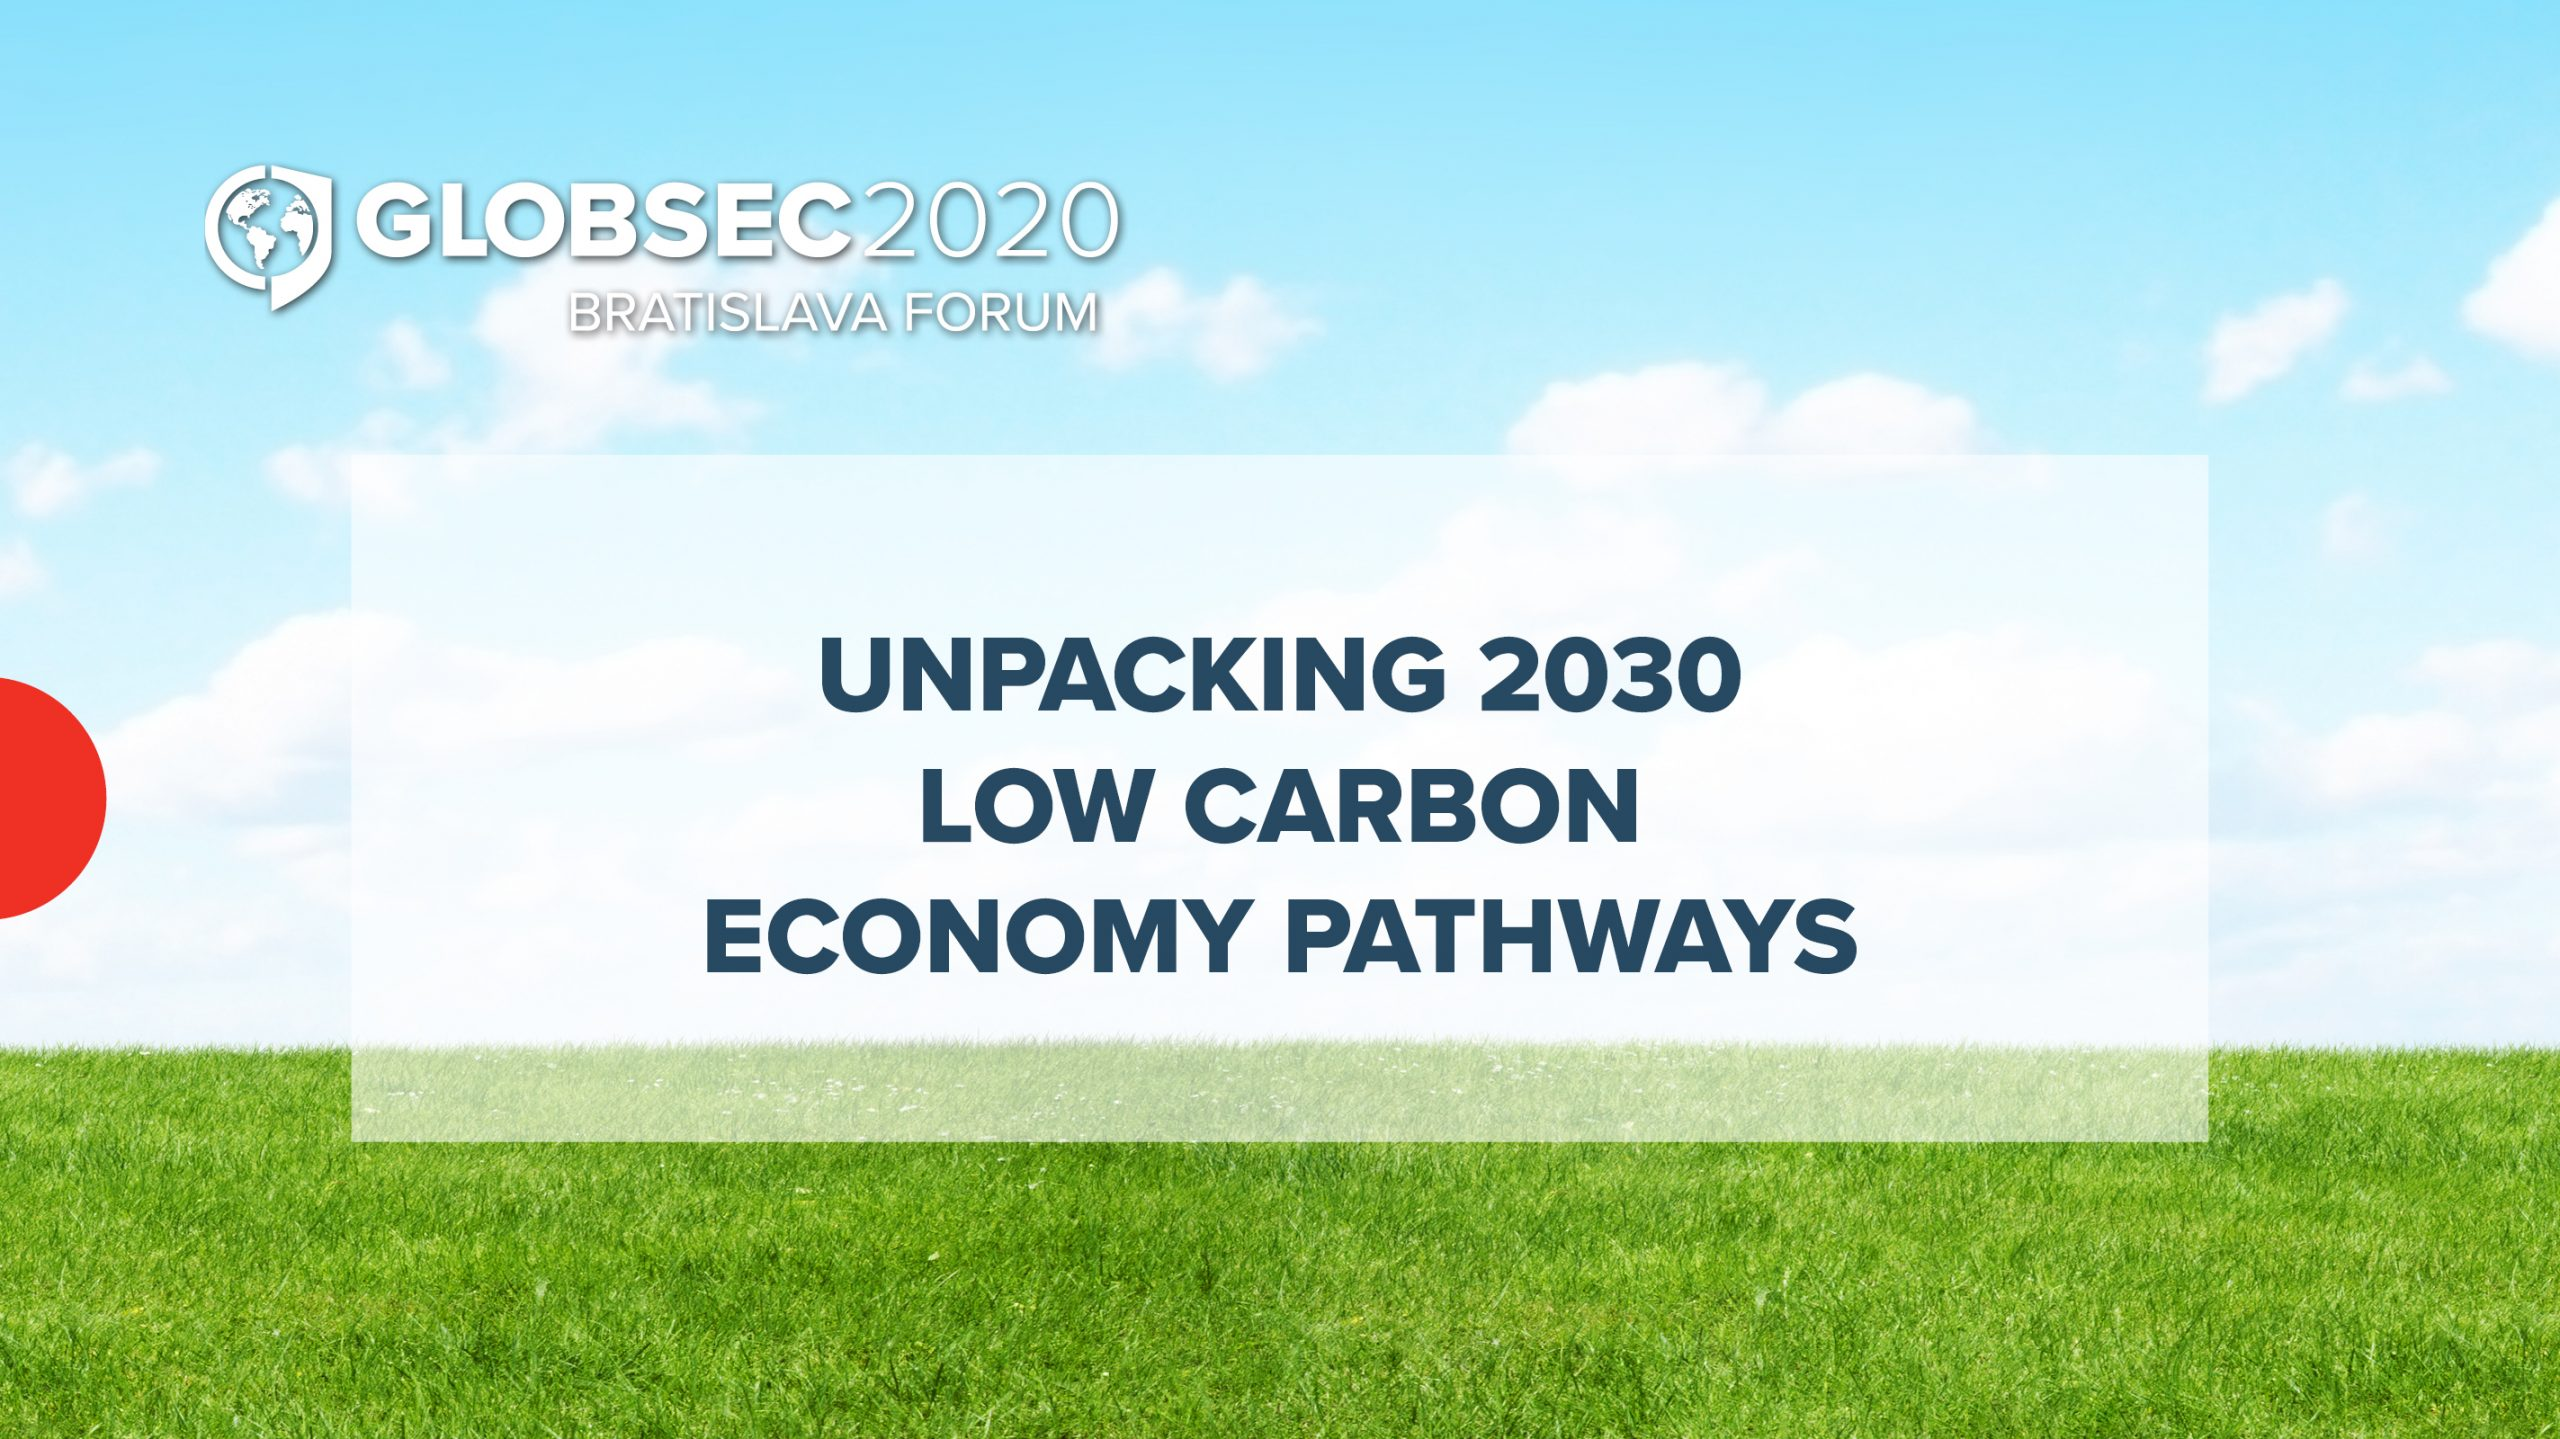 Unpacking 2030 Low Carbon Economy Pathways